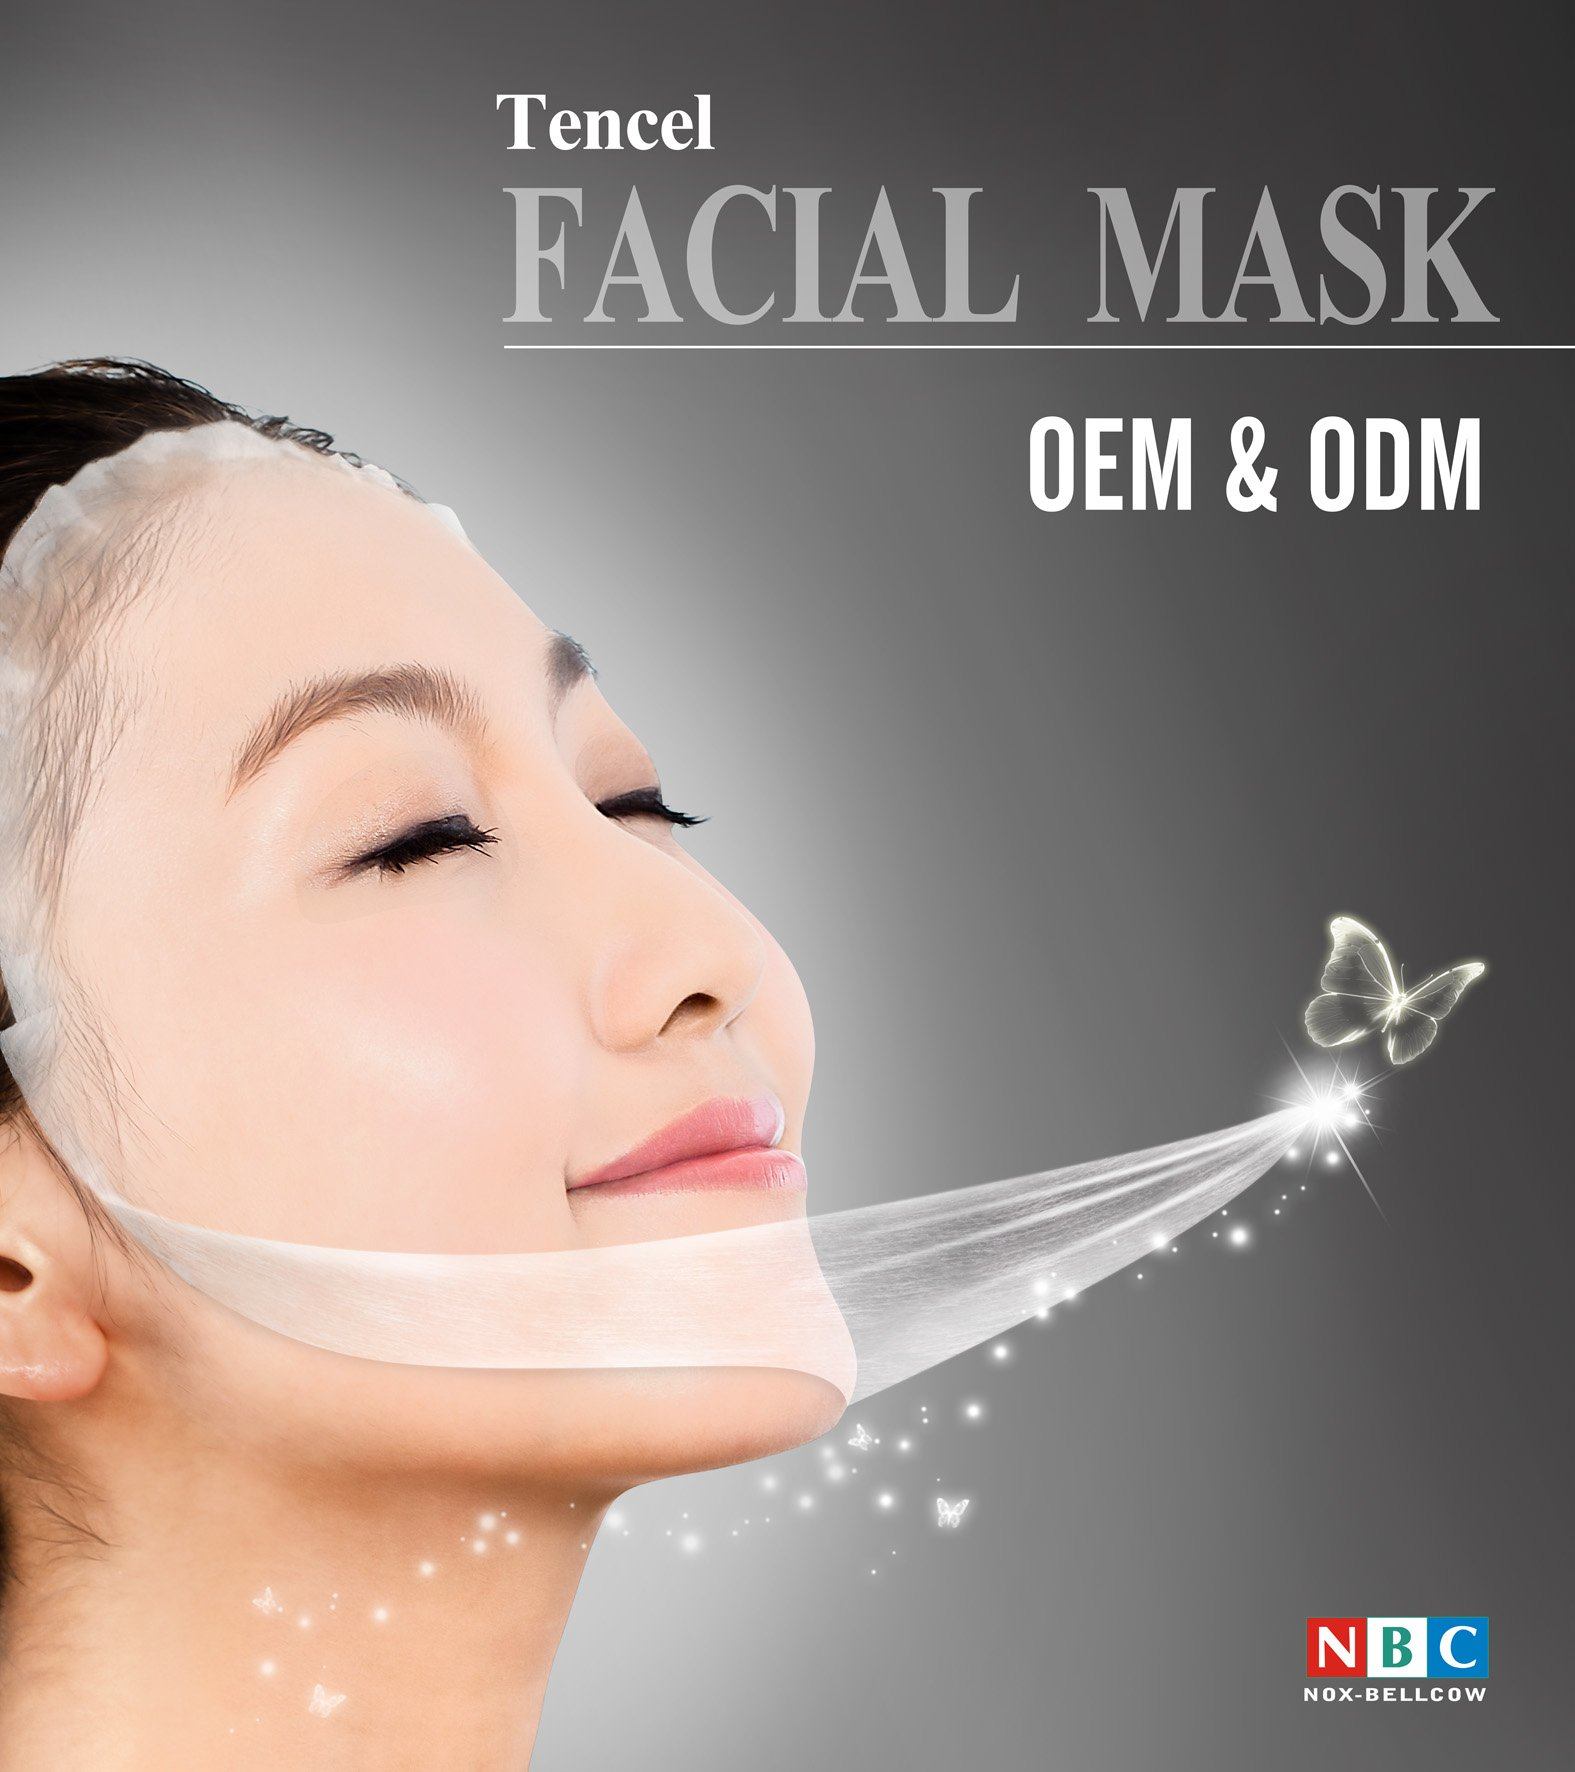 NOX BELLCOW-Tencel® Mask- Tencel® Fiber Promoting And Applying In The